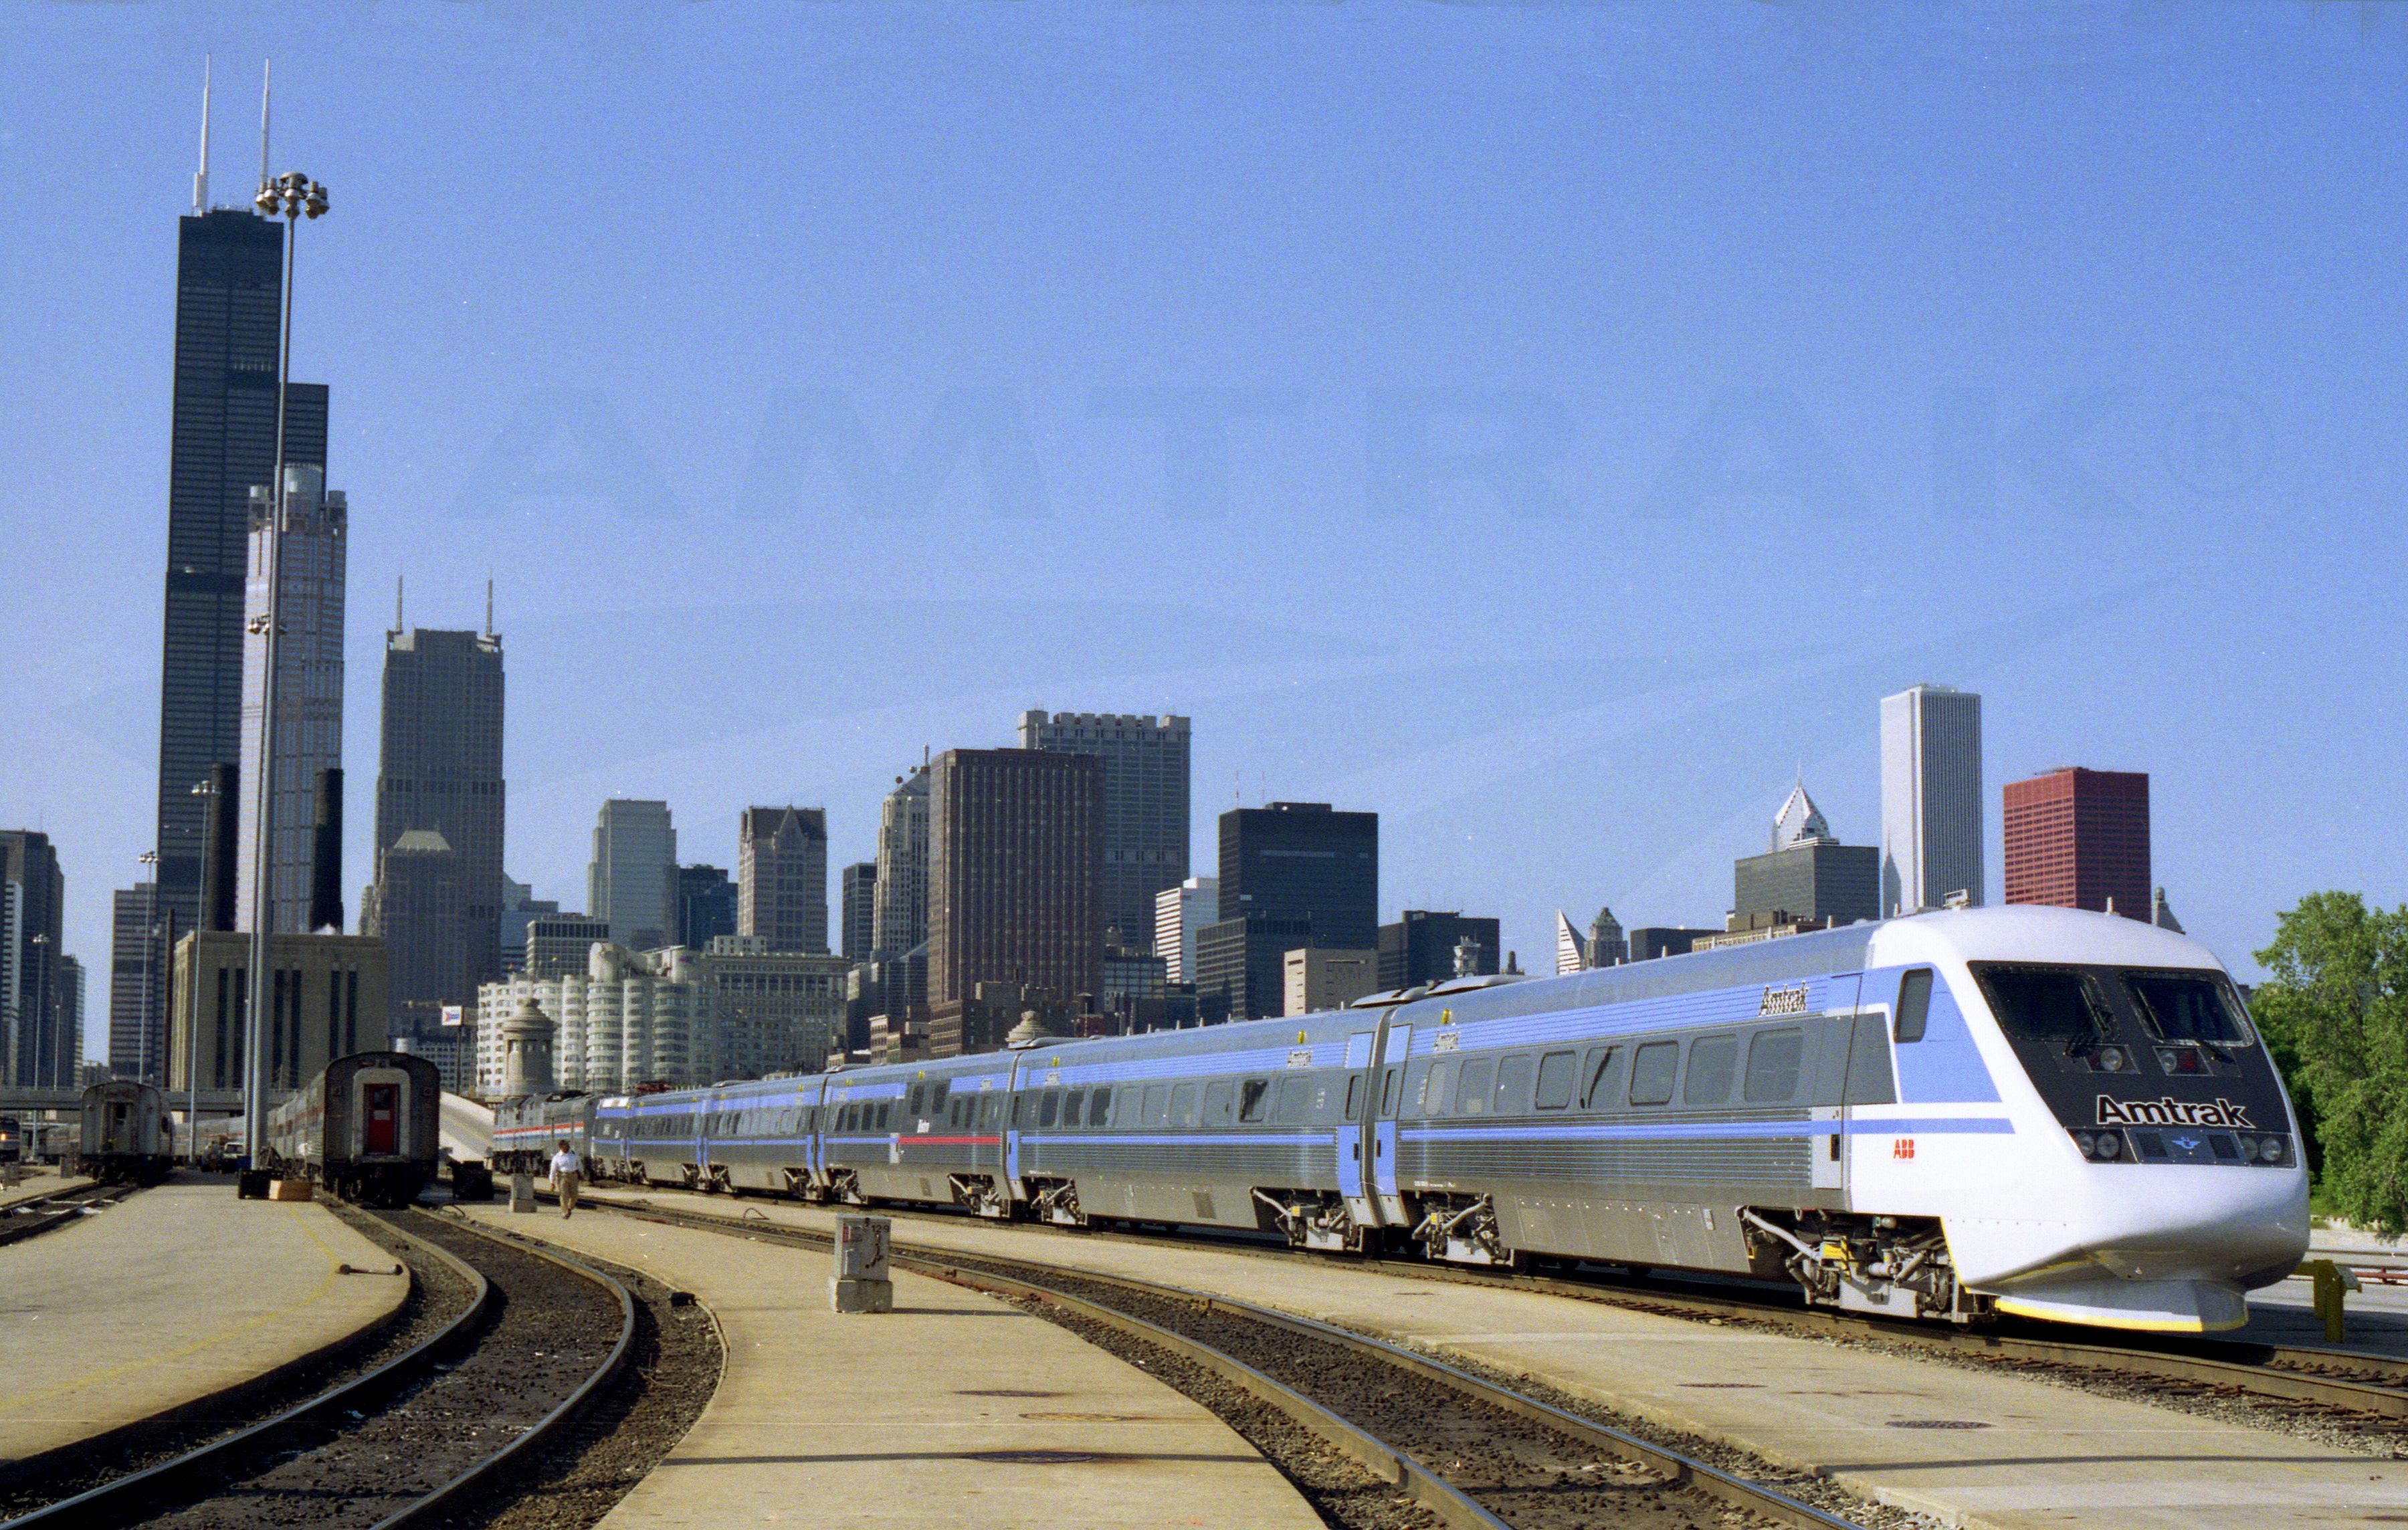 X2000 In The Chicago Yards 1993 Amtrak History Of